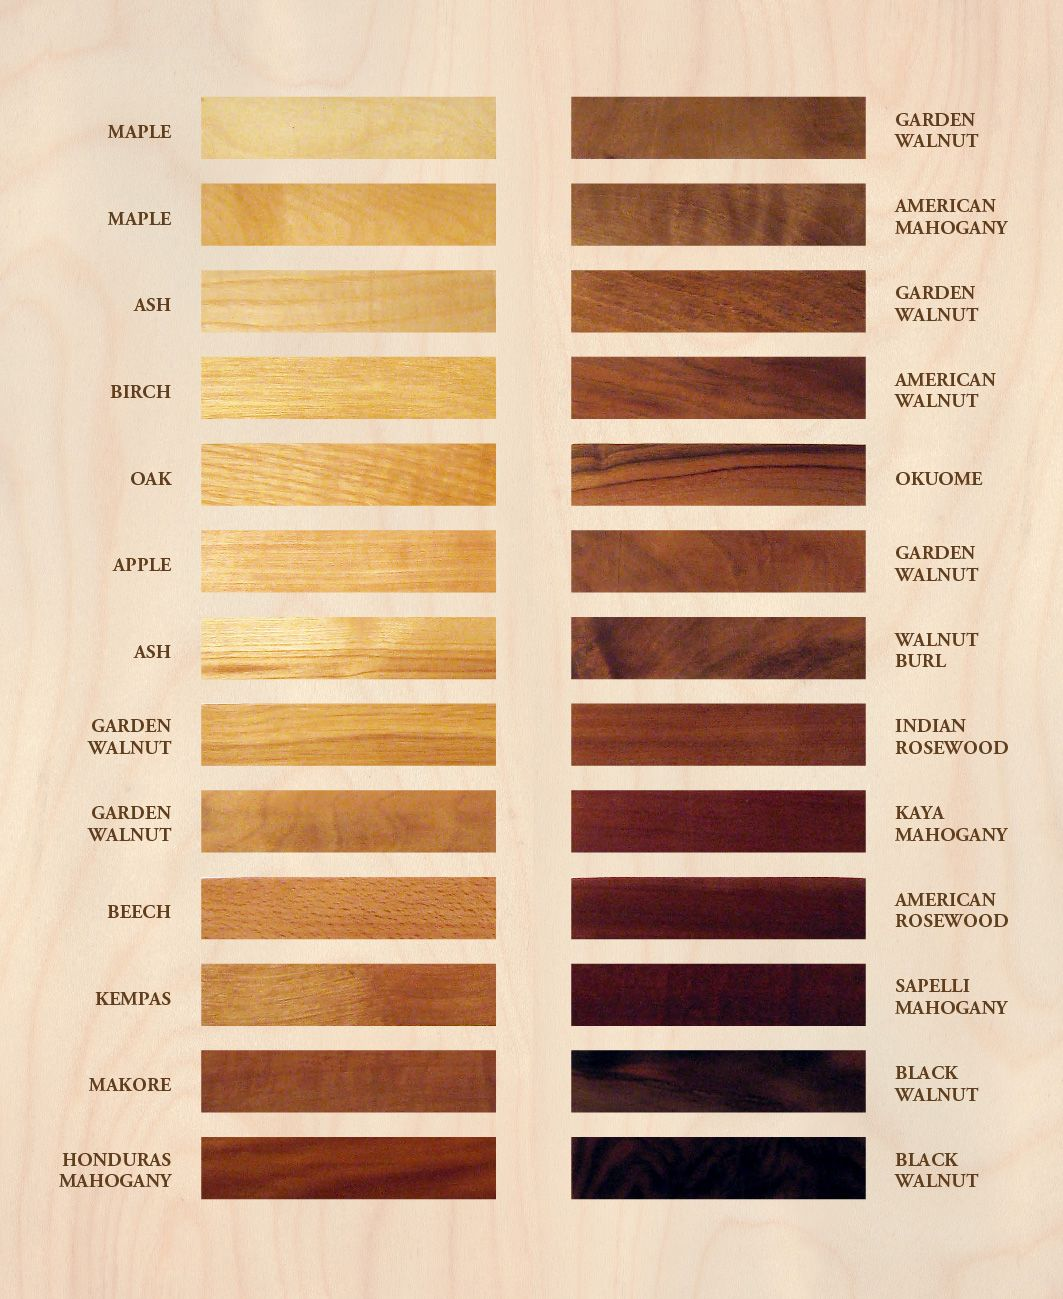 Wood Color Chart By Wood Arts Intarsia Portraits Wood Arts Intarsia Portraits Pinterest